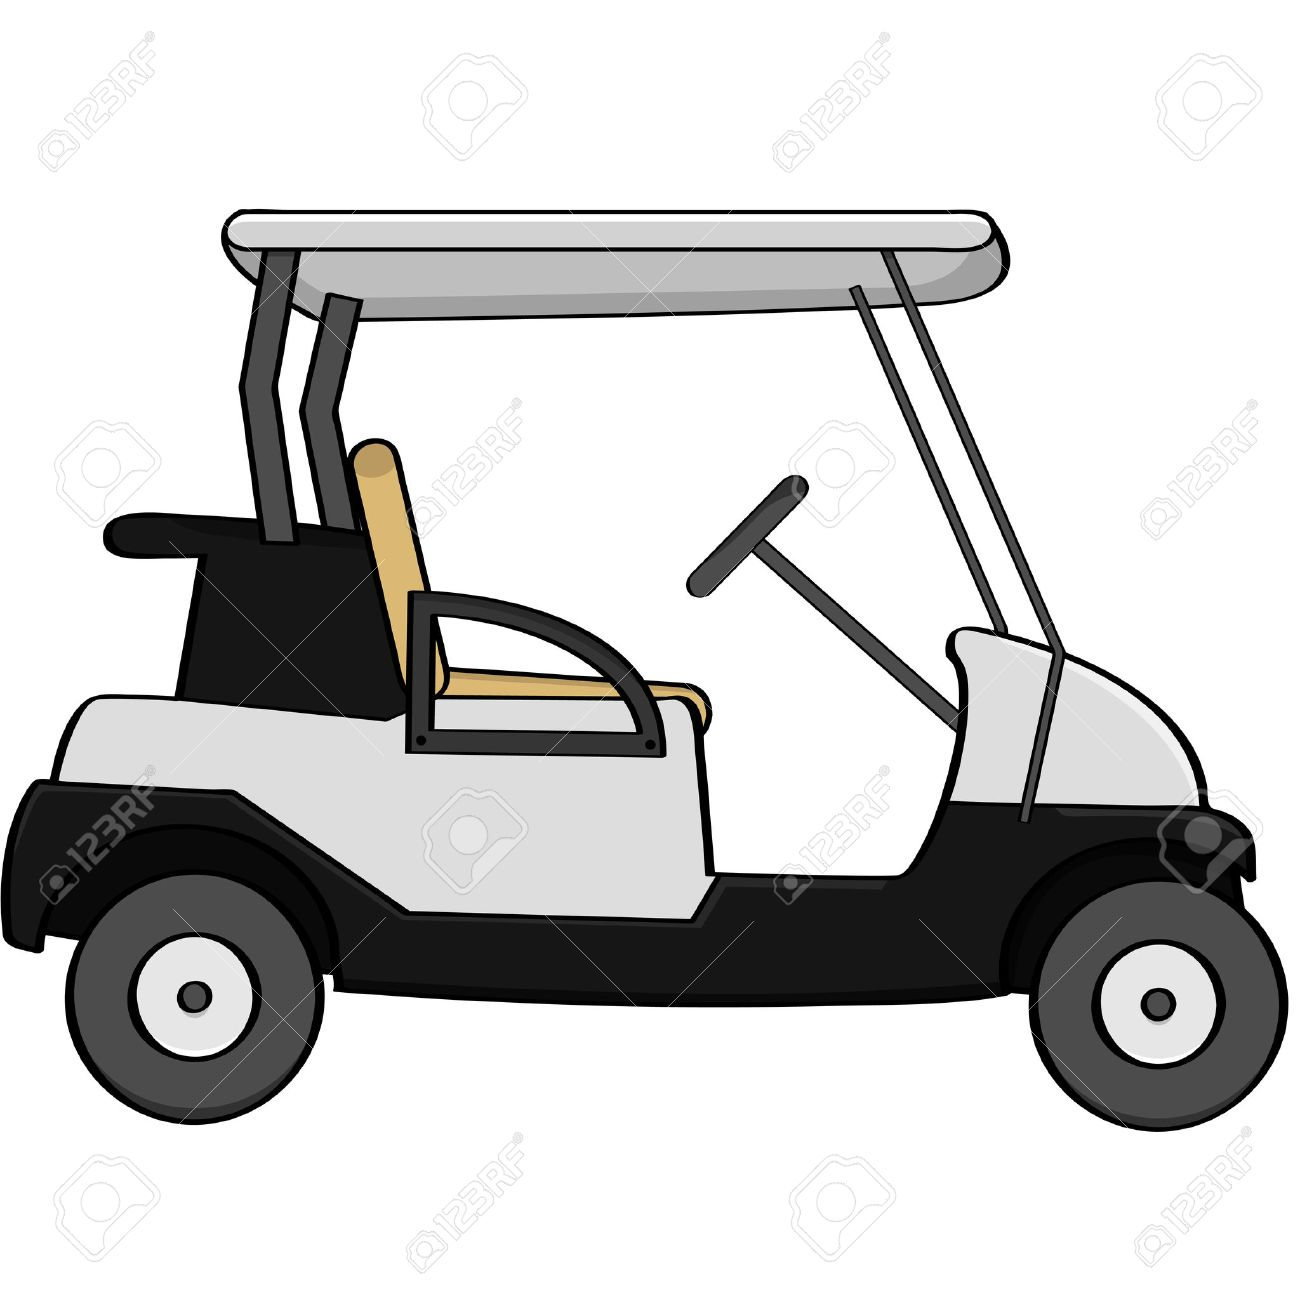 92 Golf Cart free clipart.